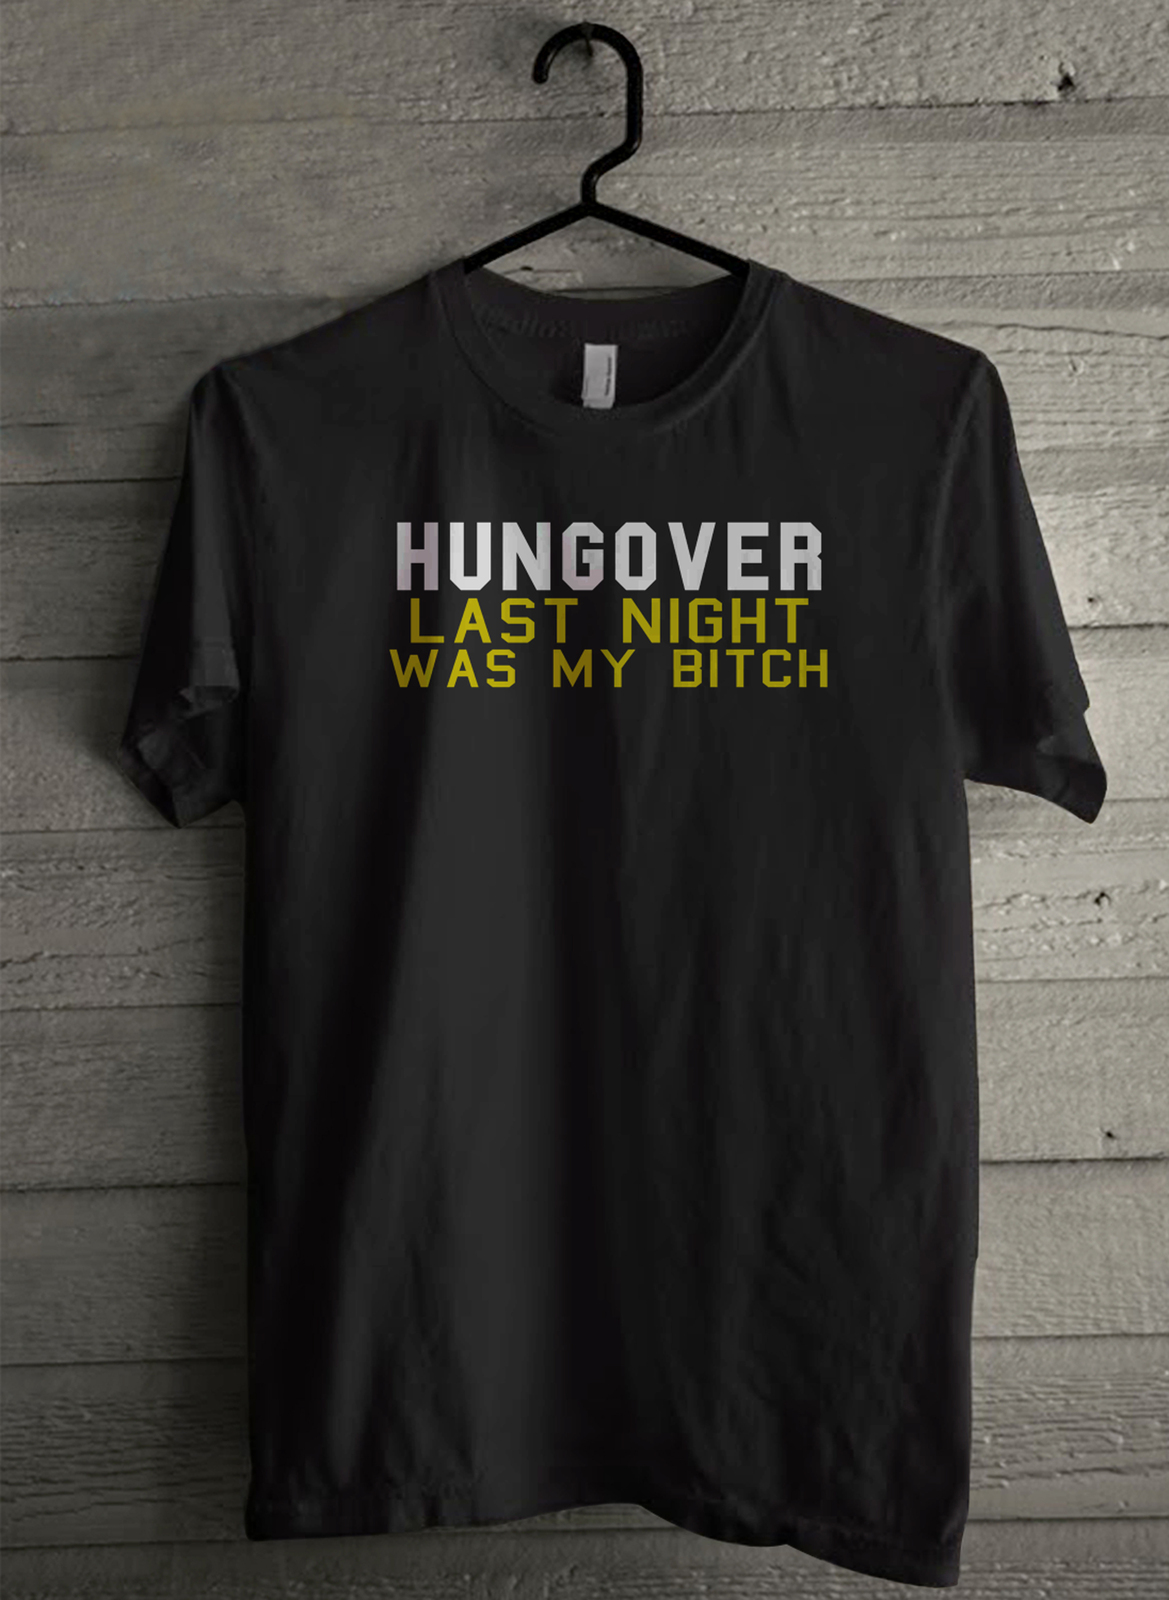 Hungover last night was my bitch